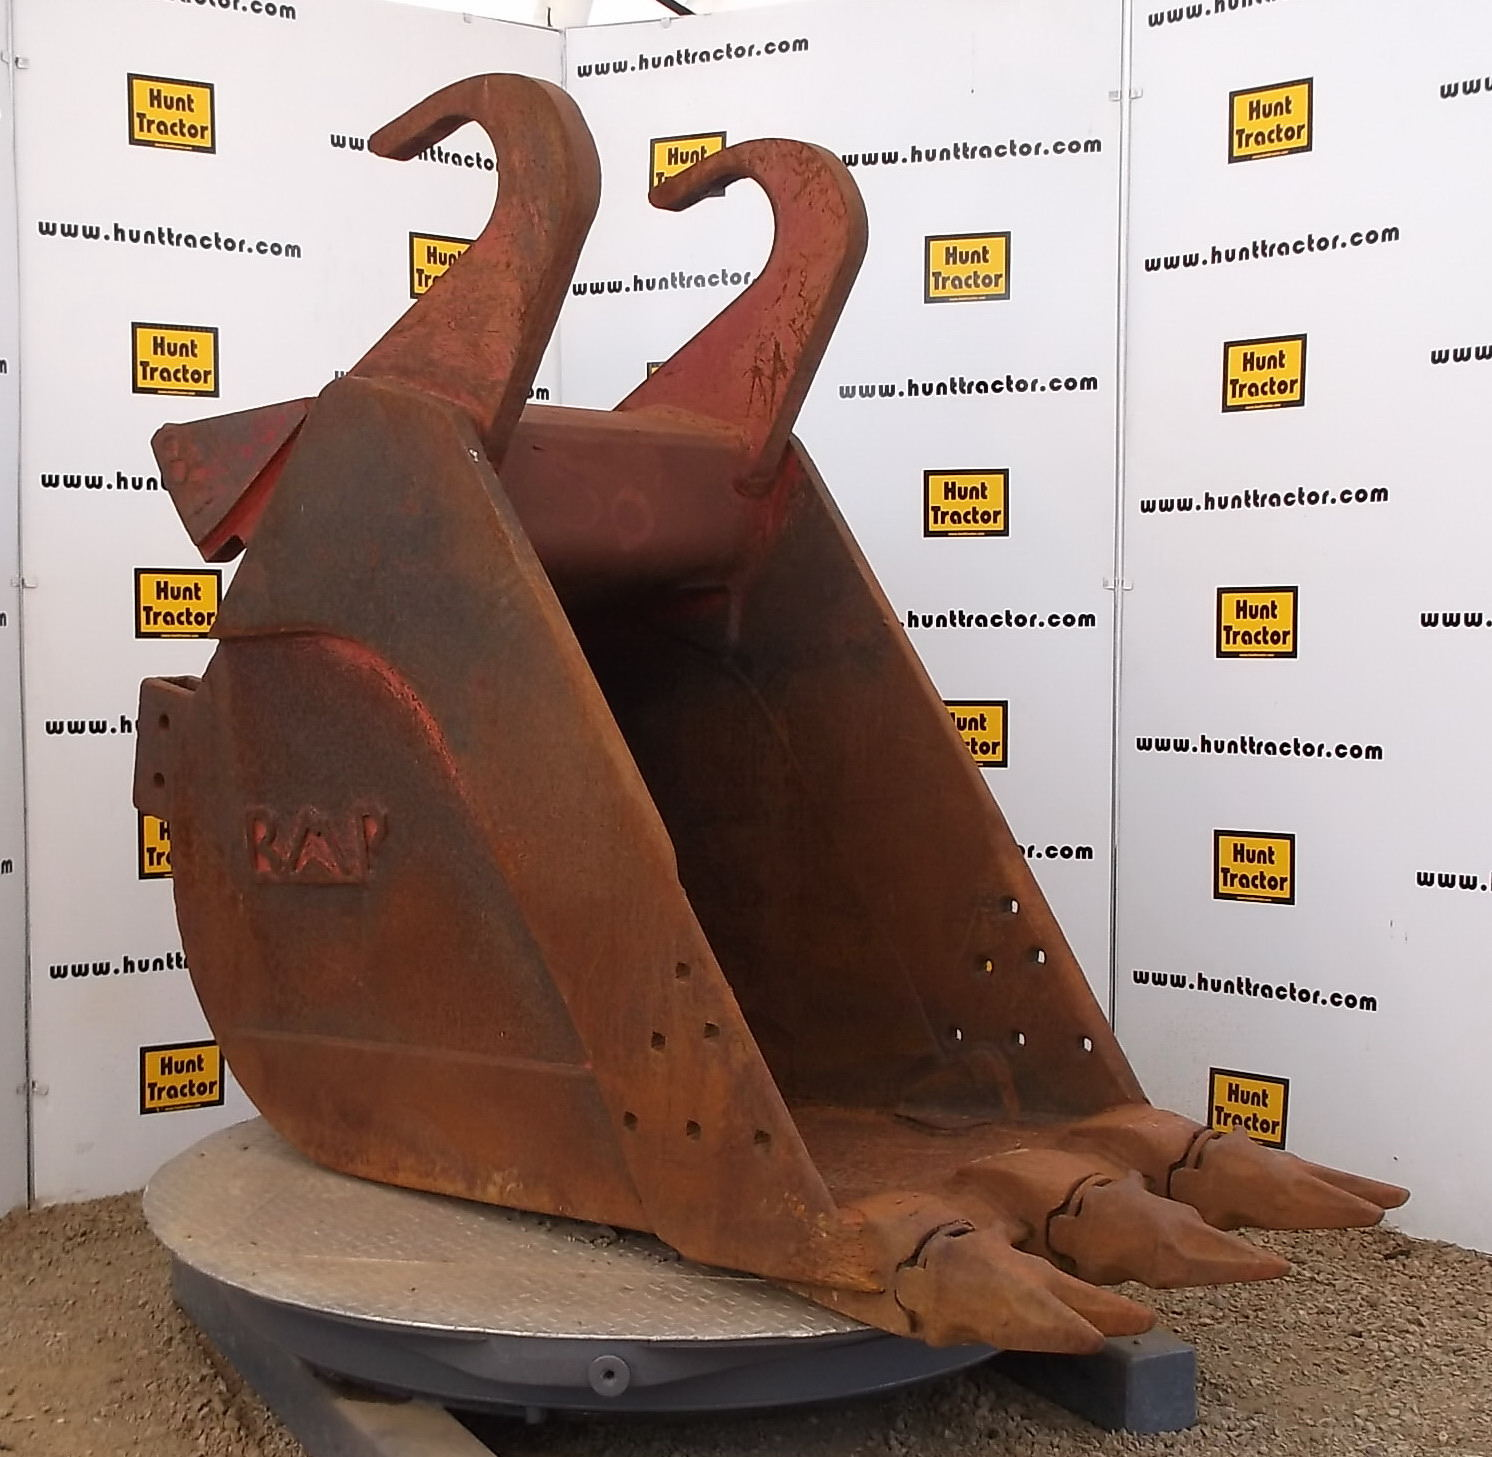 44101-32in Bucket with Jones Wedge Lugging-1